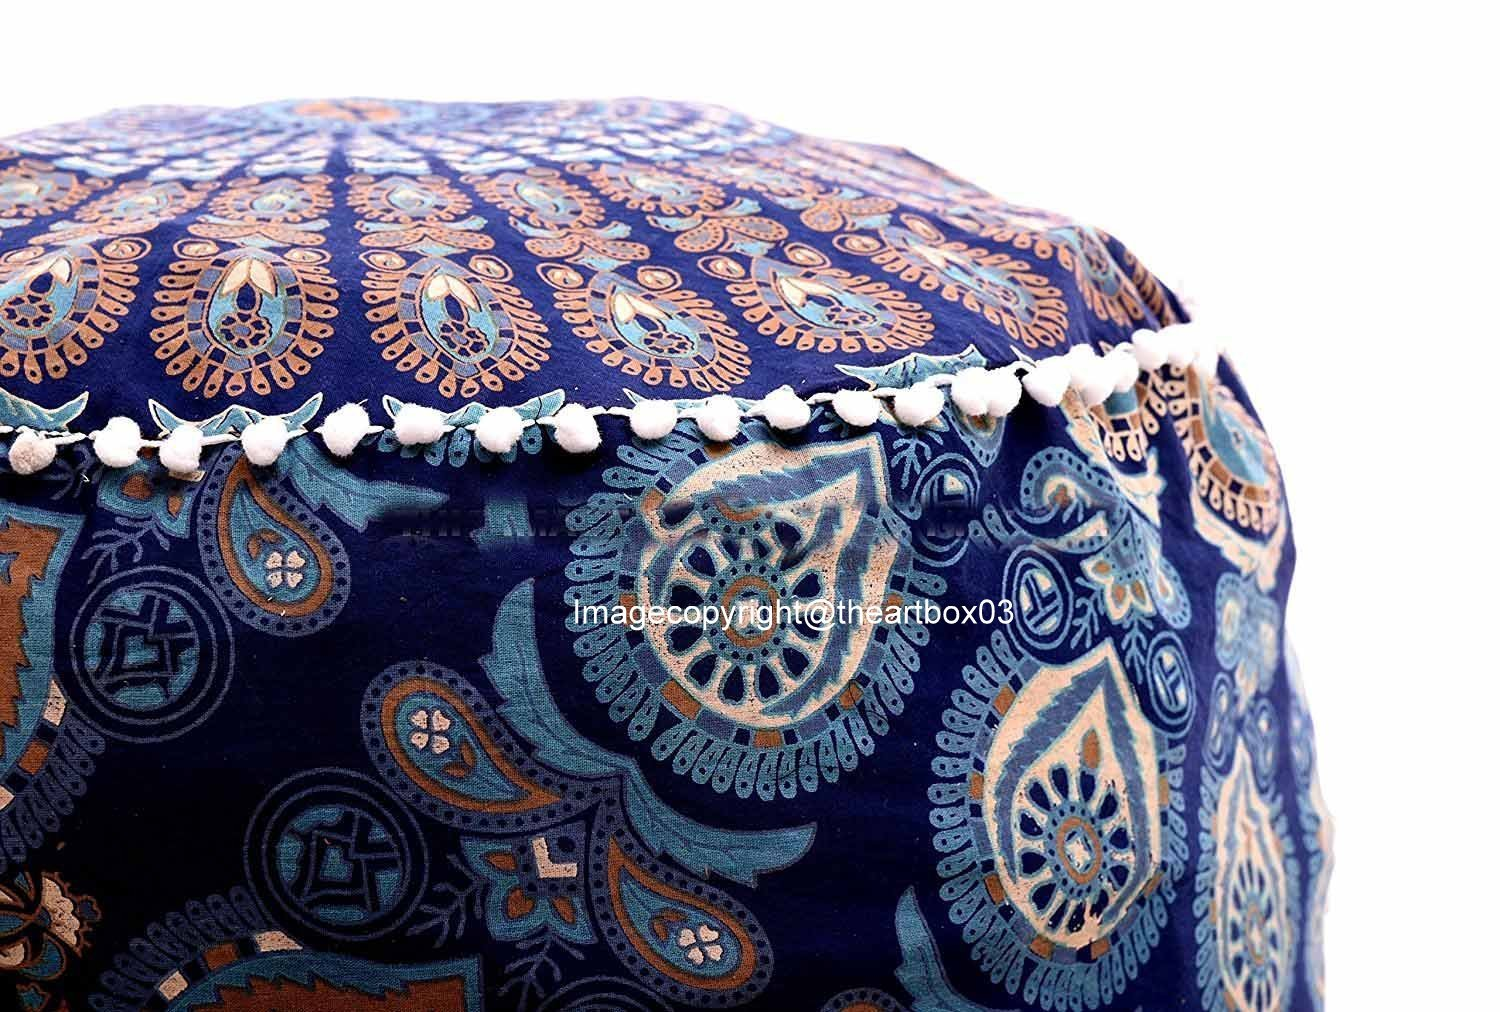 Art Box Store Blue & Multi-color Ottoman Pouf Cover Indian Foot Stool Cover Vintage Kid Seating Ottomans Pouf Covers Pouffe Round Floor Cushion Cover artboxstore